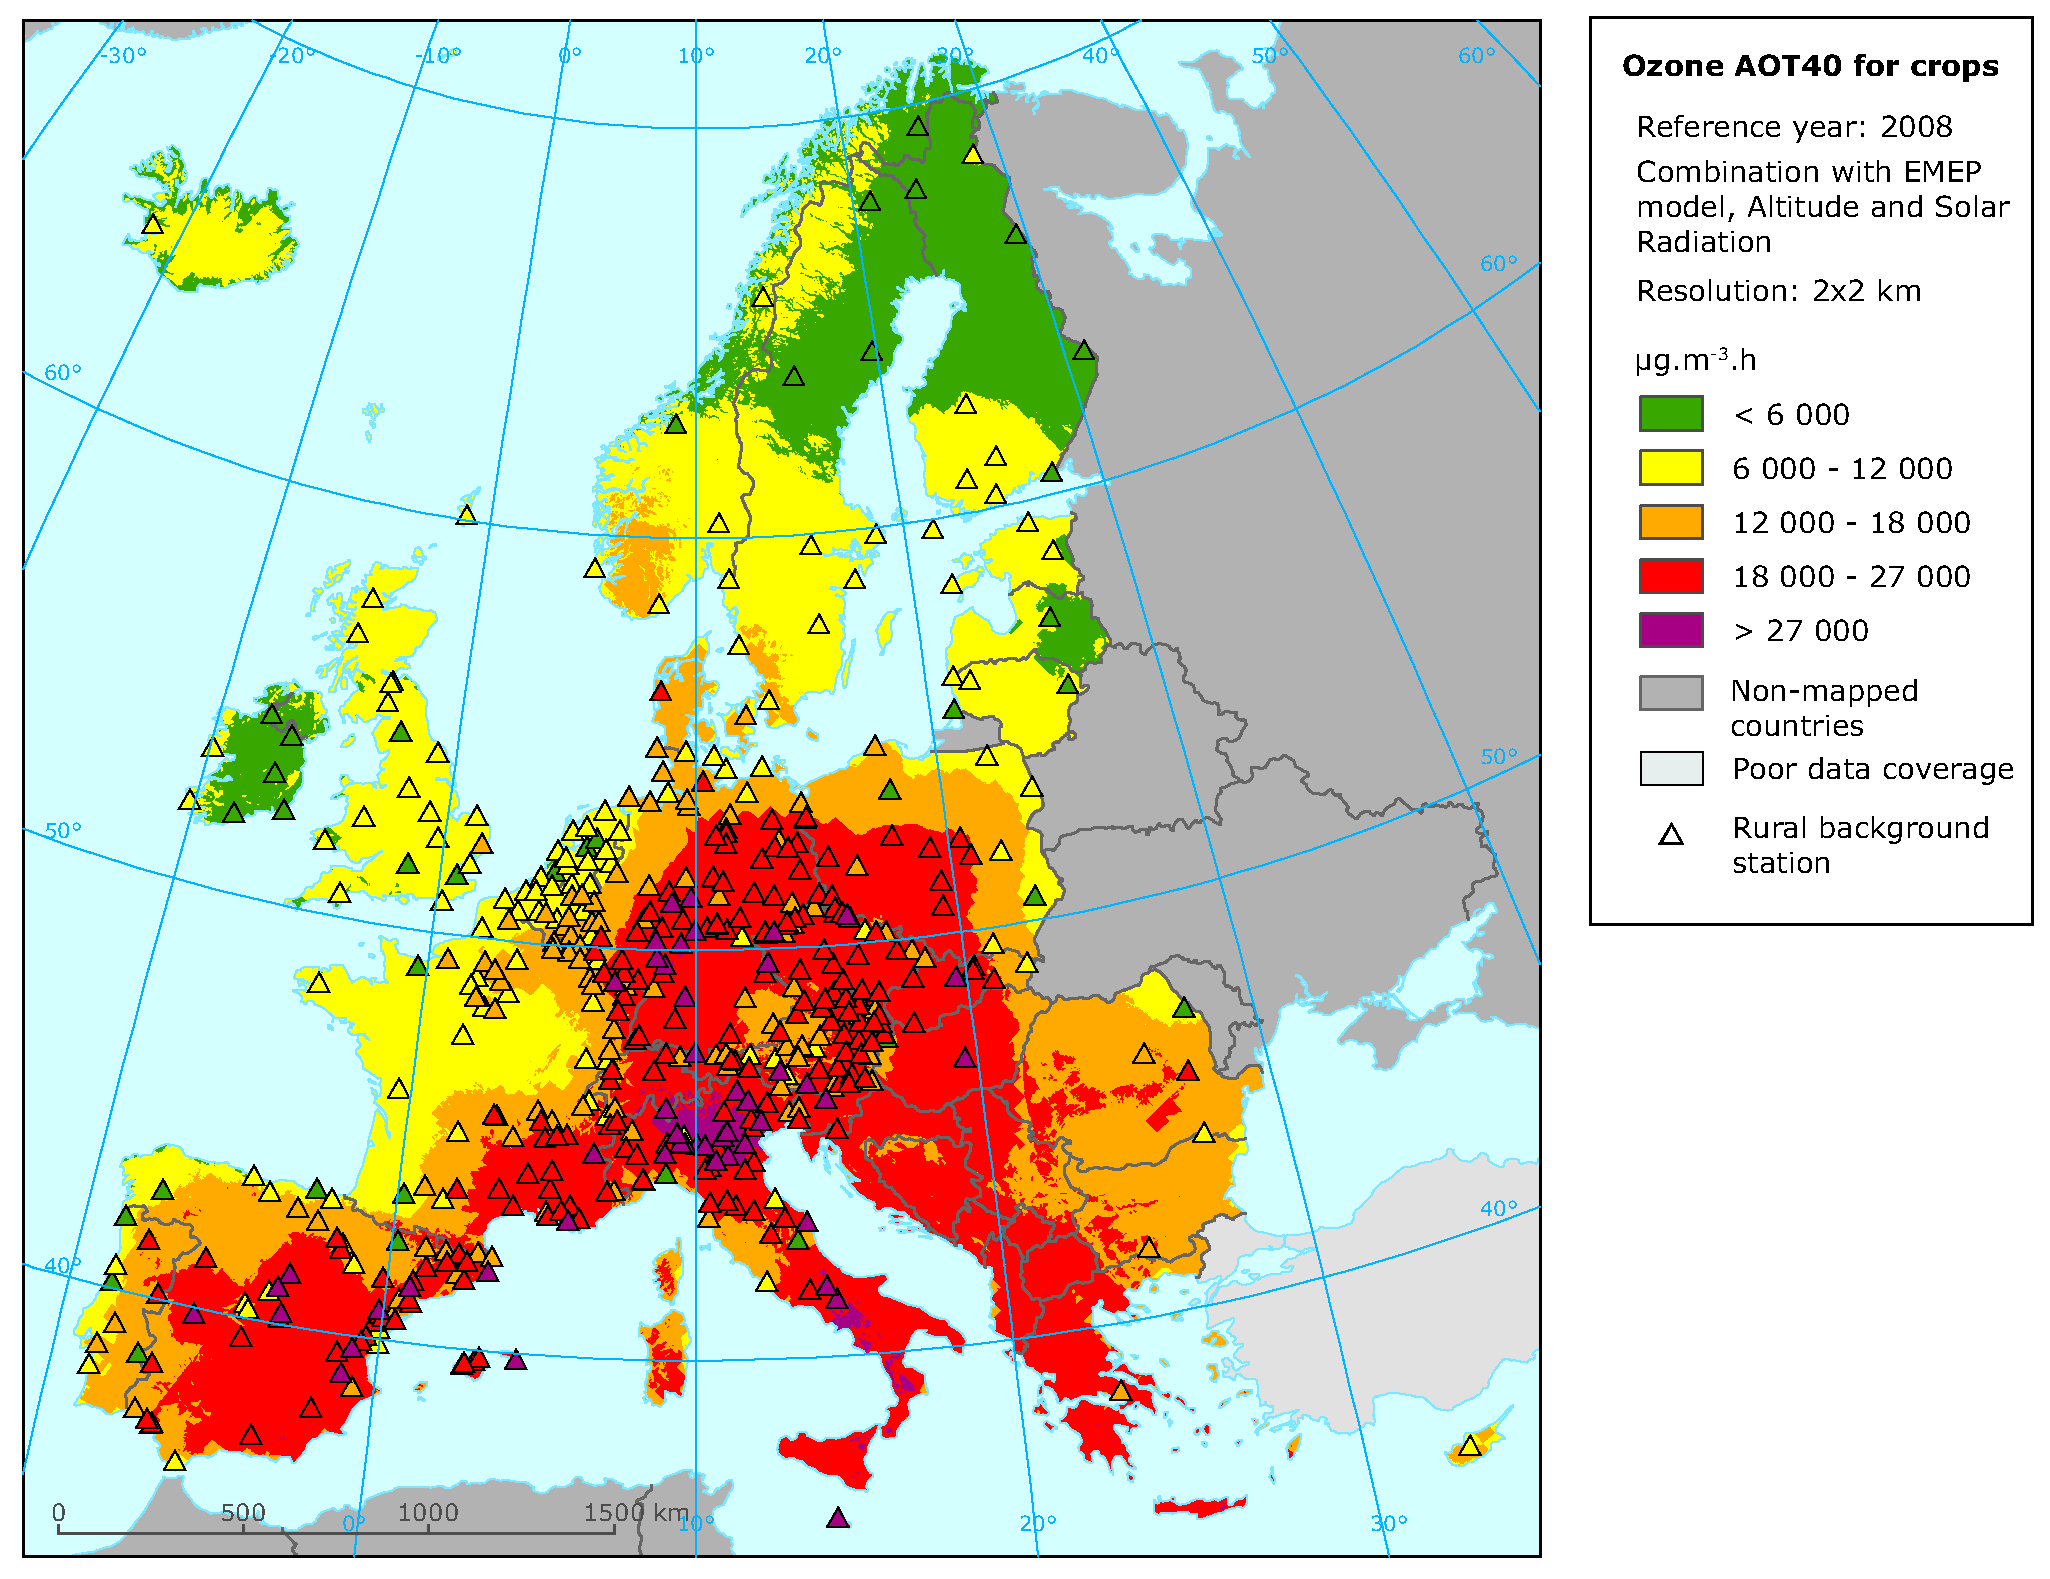 Rural concentration map of the ozone indicator AOT40 for crops, year 2008